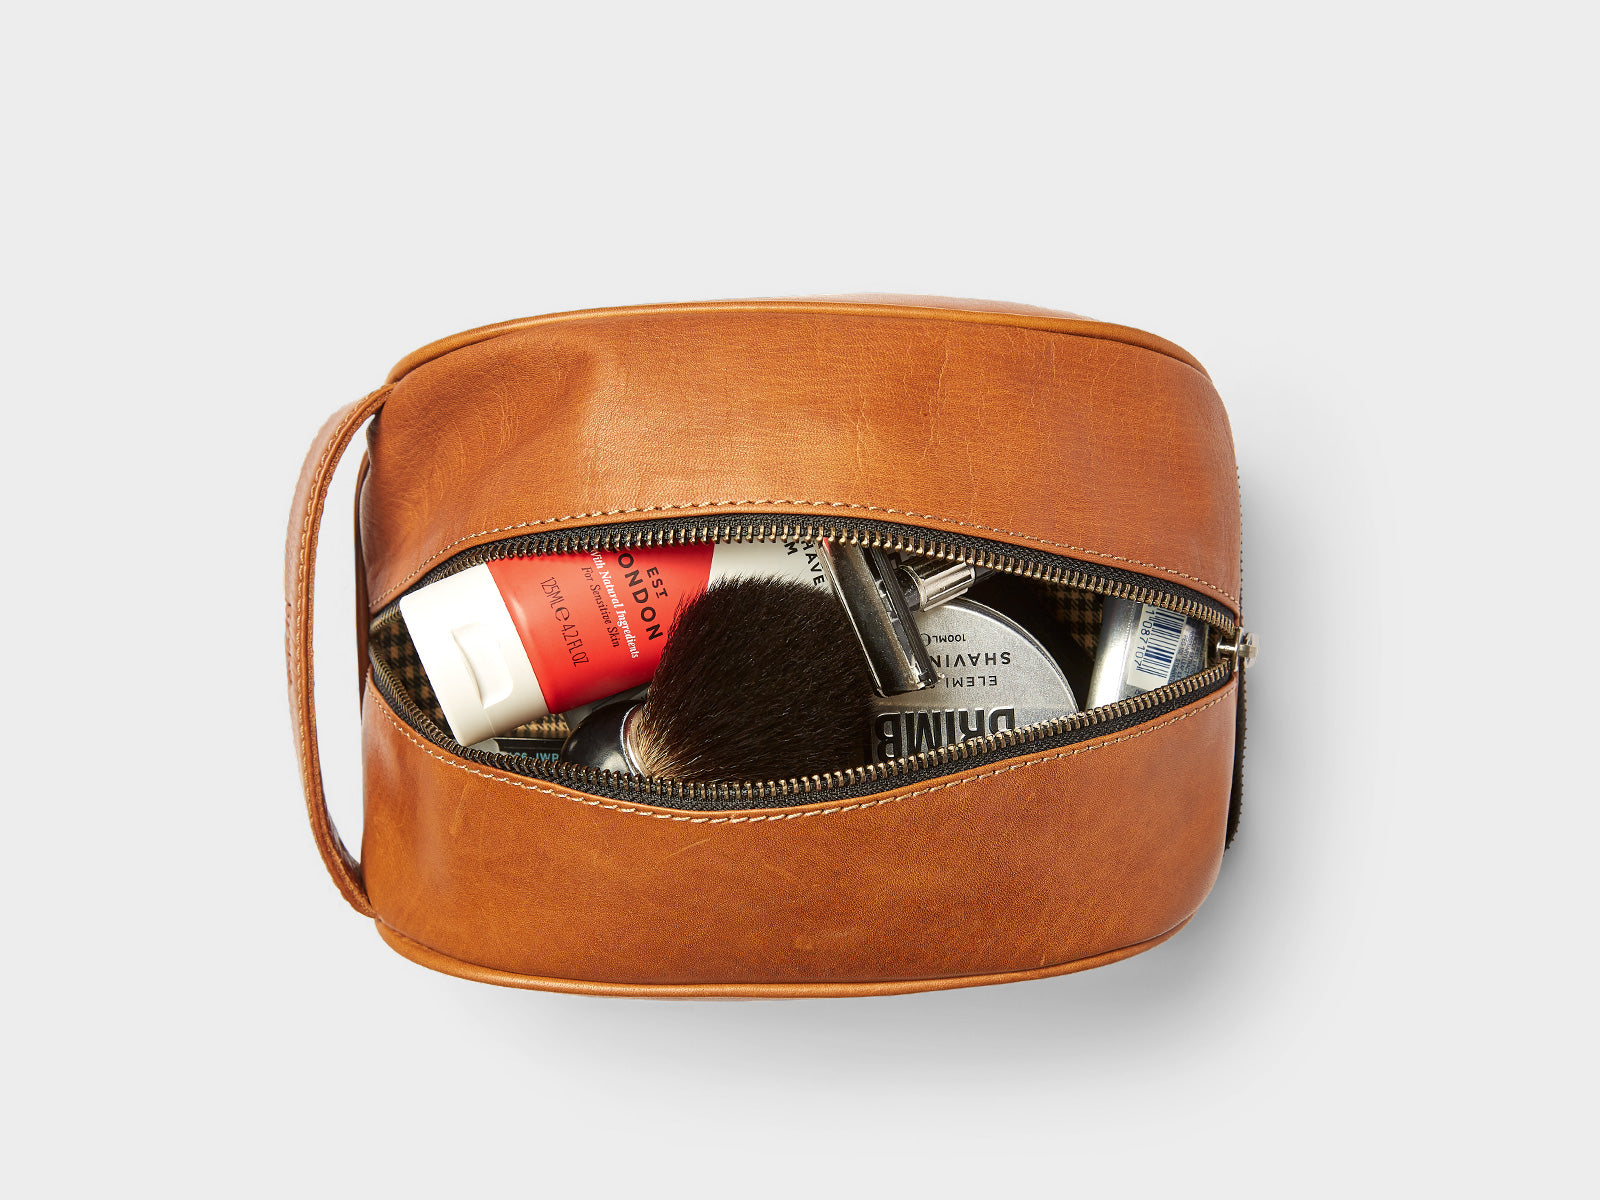 39e34764ac73 LIWA Dopp Kit - Toiletry Bag